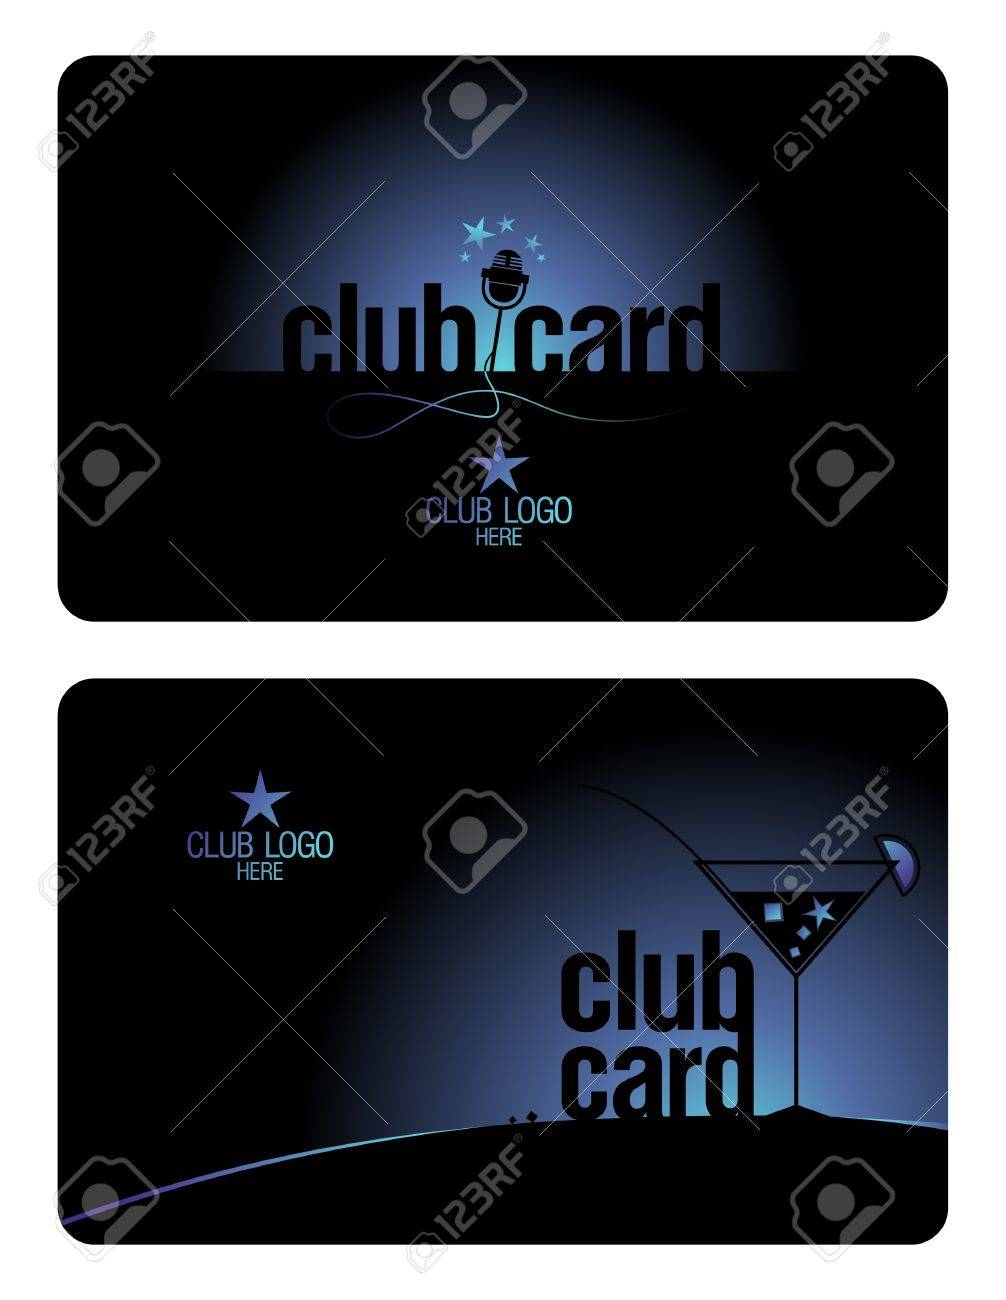 Club Plastic Card Design Template For Karaoke And Lounge Clubs